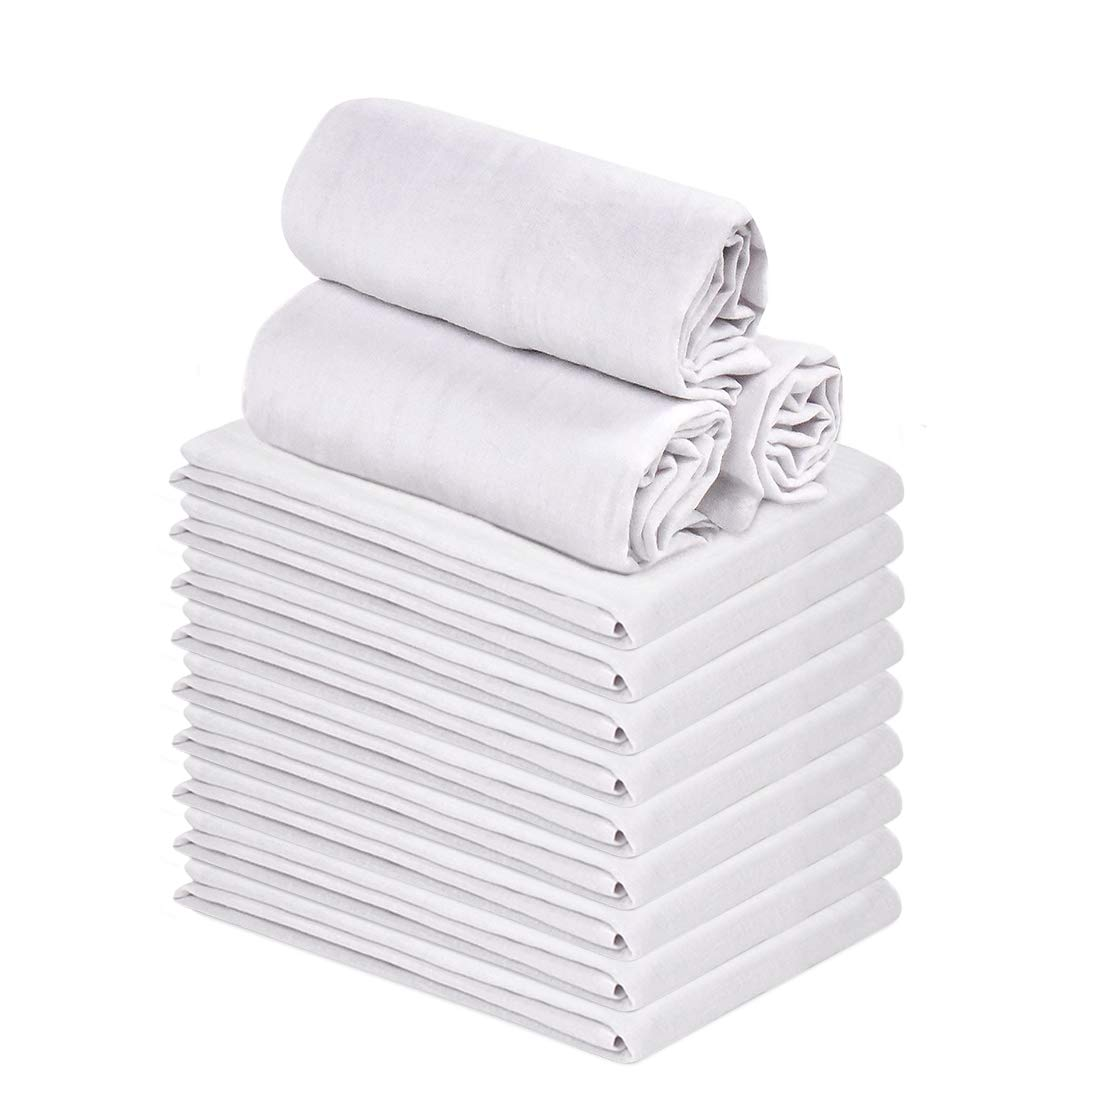 "Talvania Classic White Flour Sack Towels - 12-Pack of 100% Ring Spun Cotton All Purpose Home Kitchen Towels/Catering for Thousands of Uses. Maximum Absorbency - Lint Free Measures 28"" X 28"""